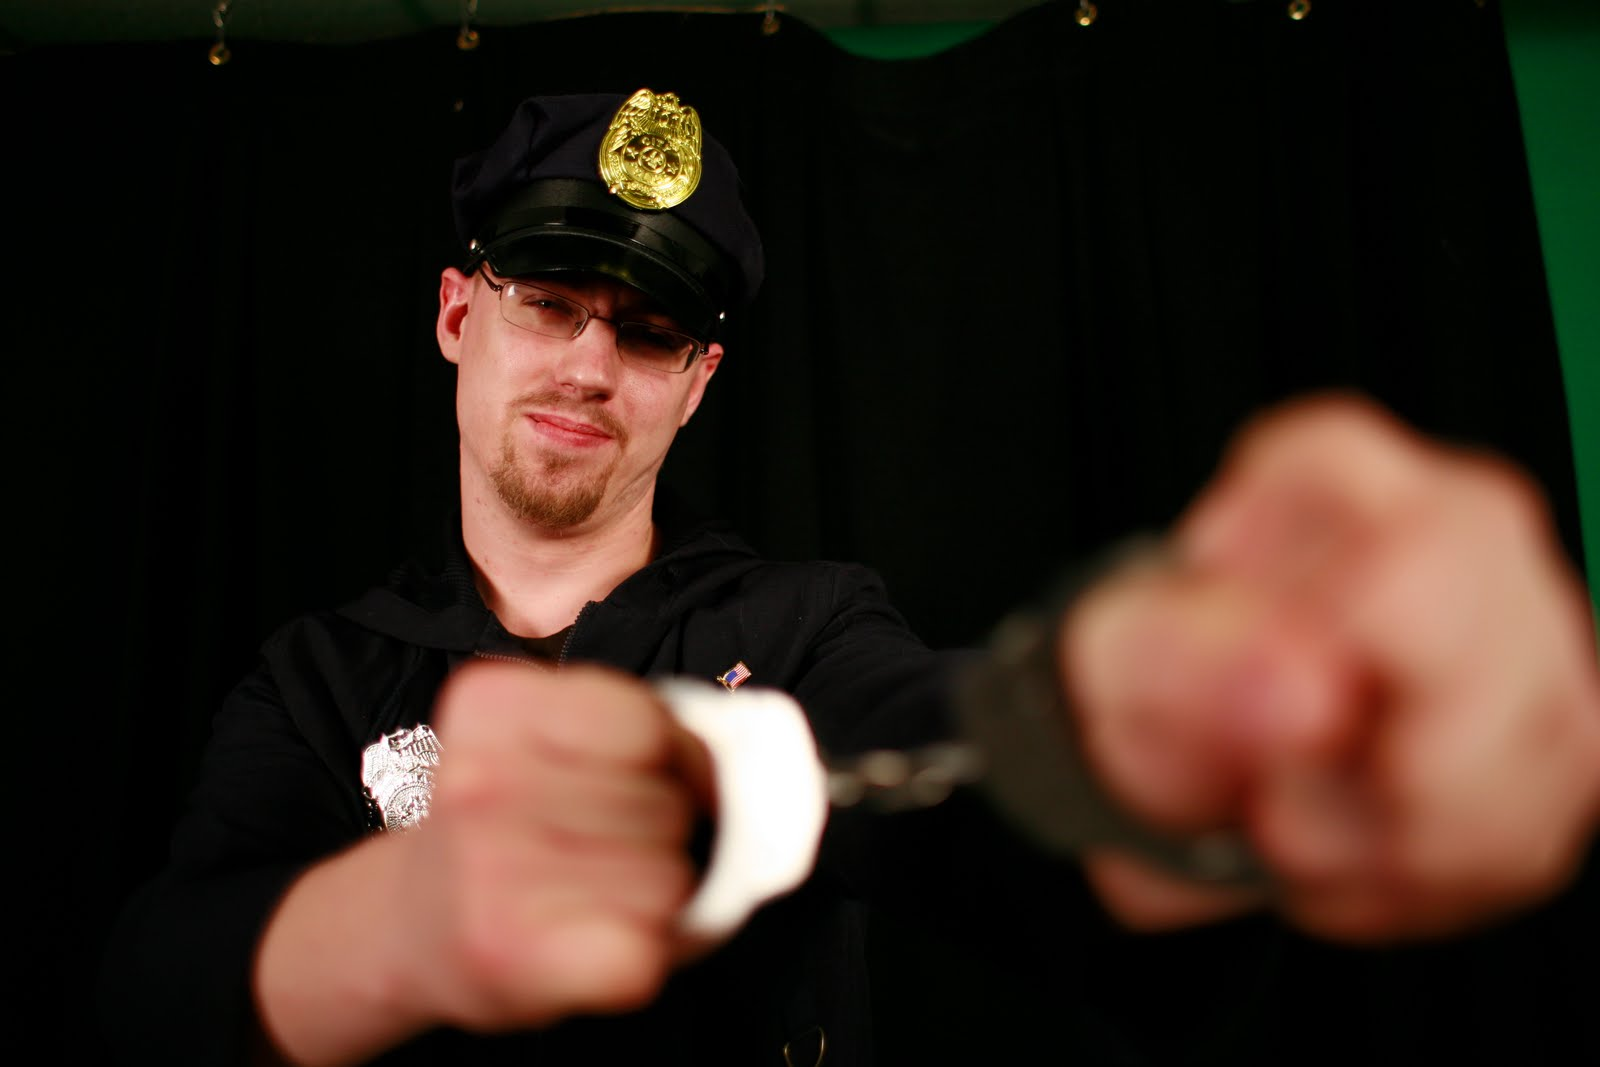 Officer Dave Lives by the Code of His Hero, Barney Fife